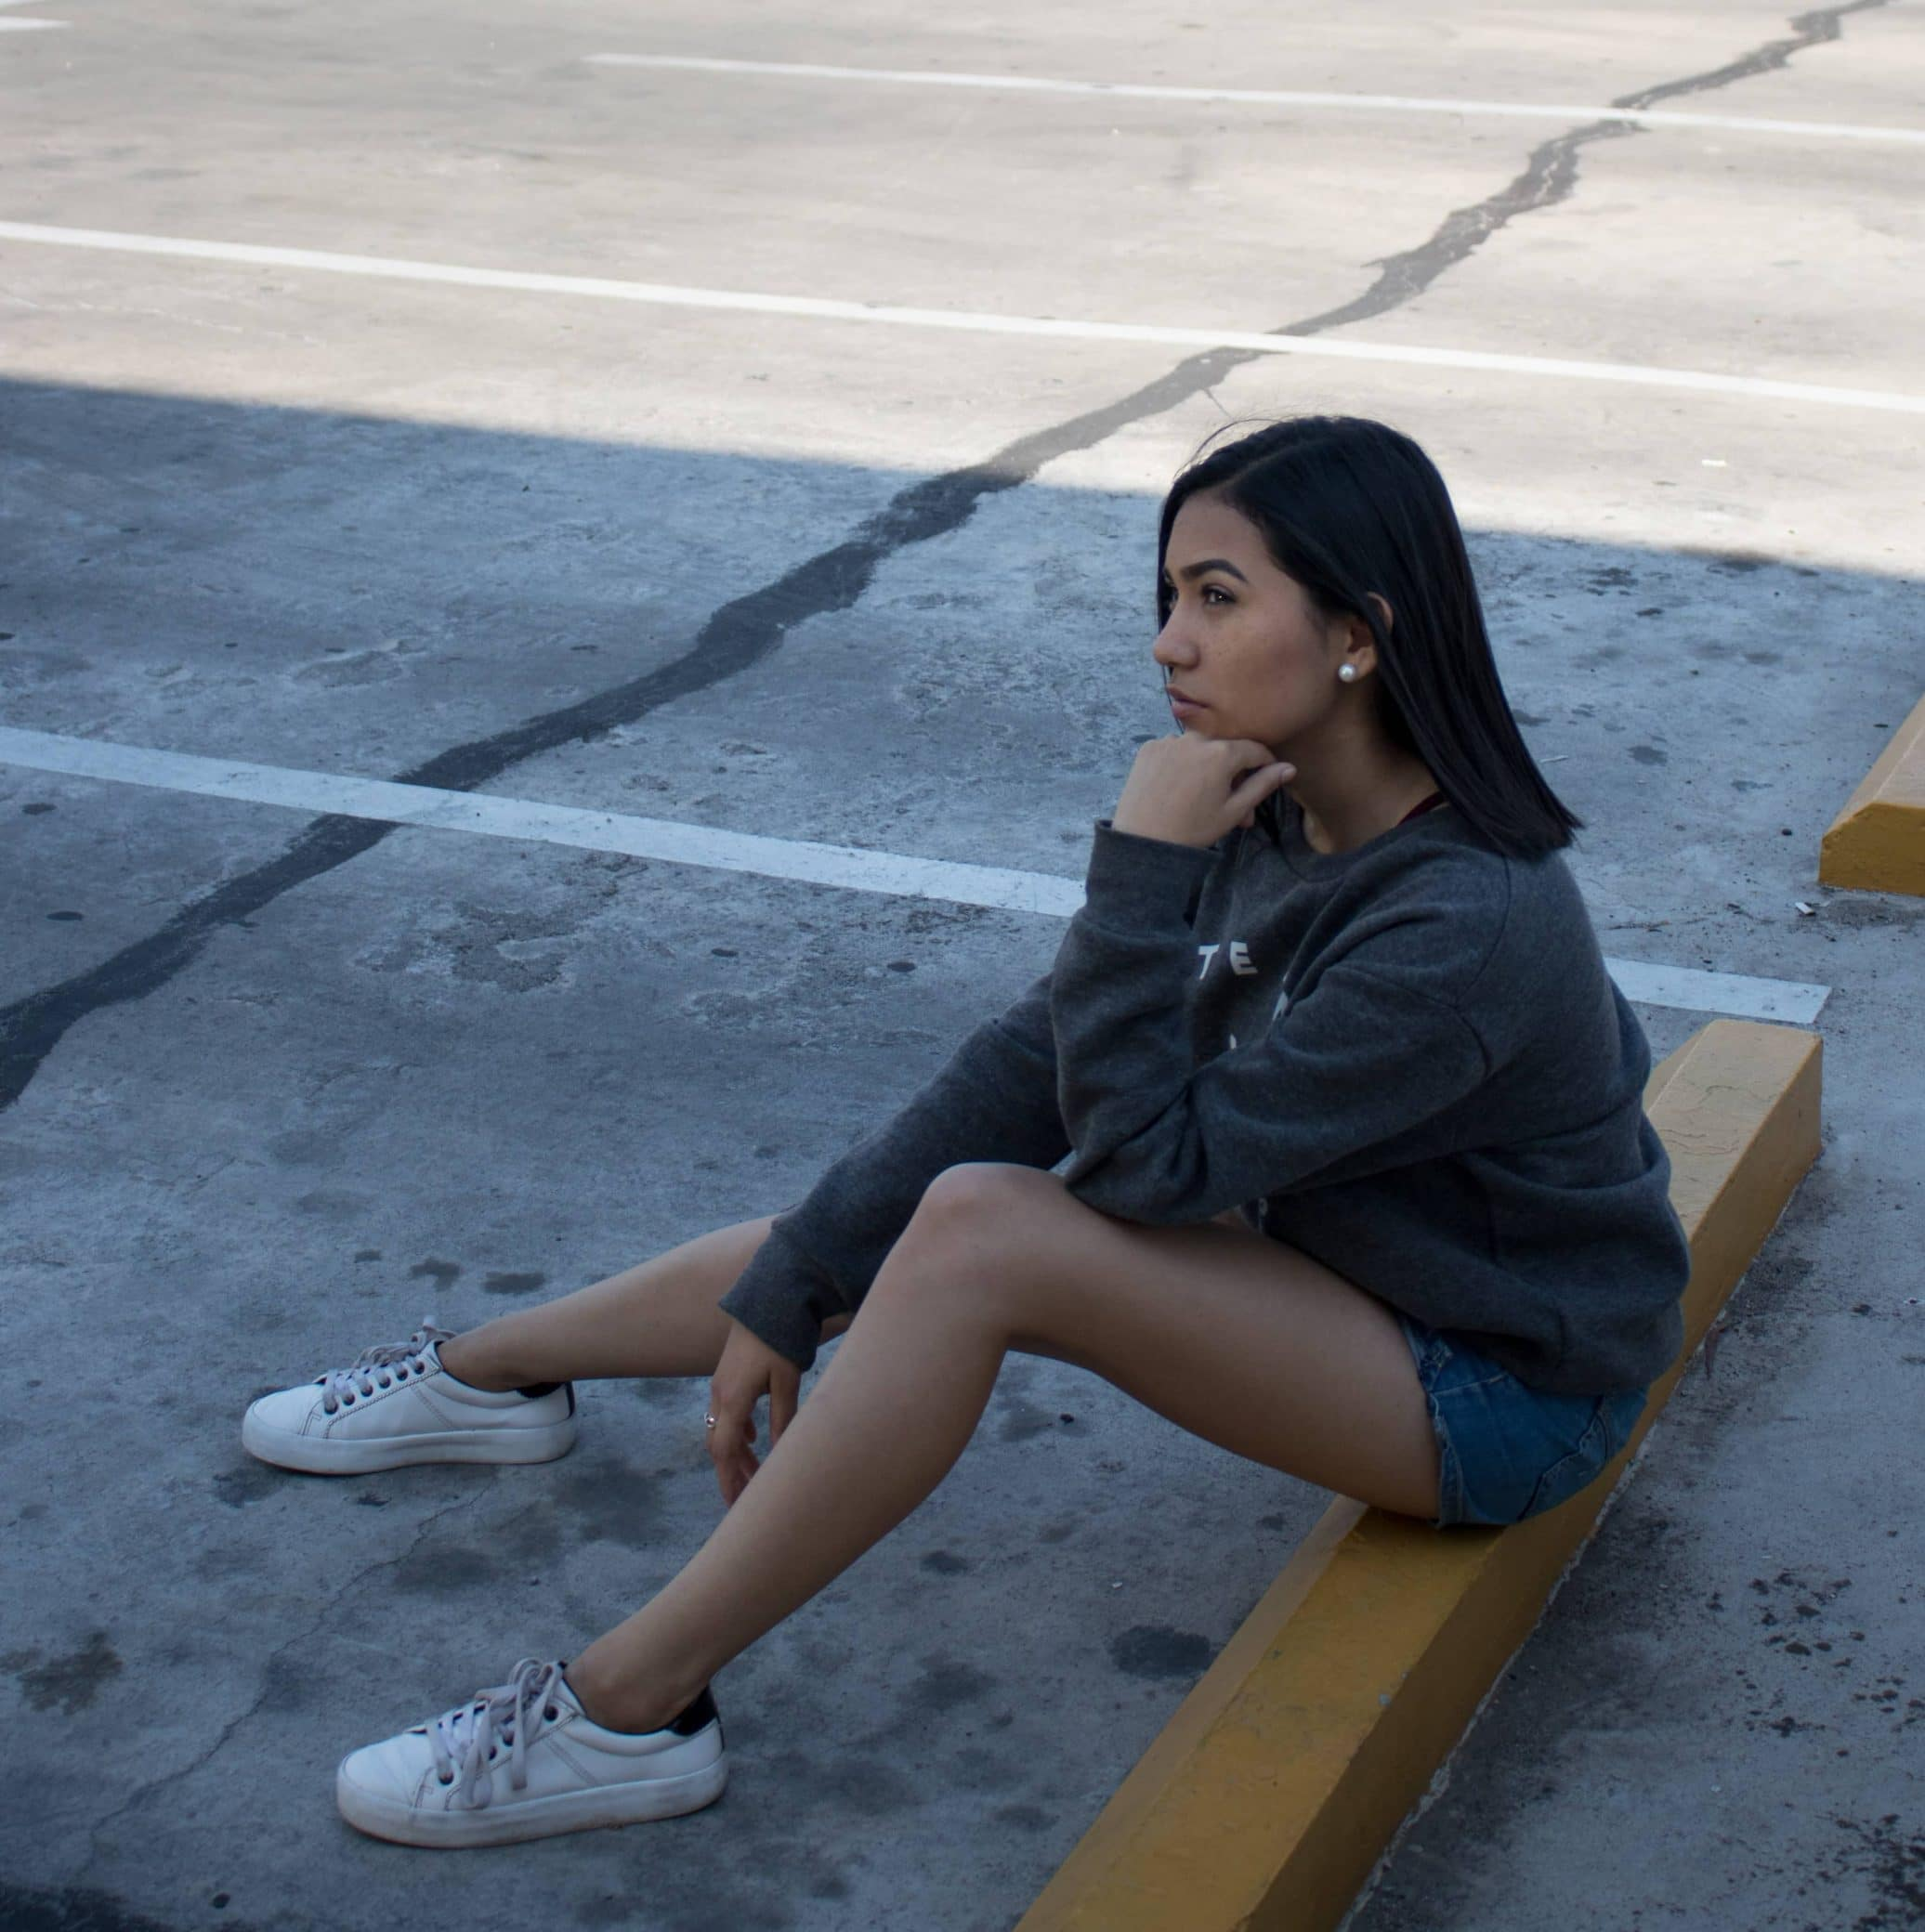 Beautiful woman sitting on concrete in a thinking pose thinking wearing sneakers and short denim shorts showing long bare legs and thighs